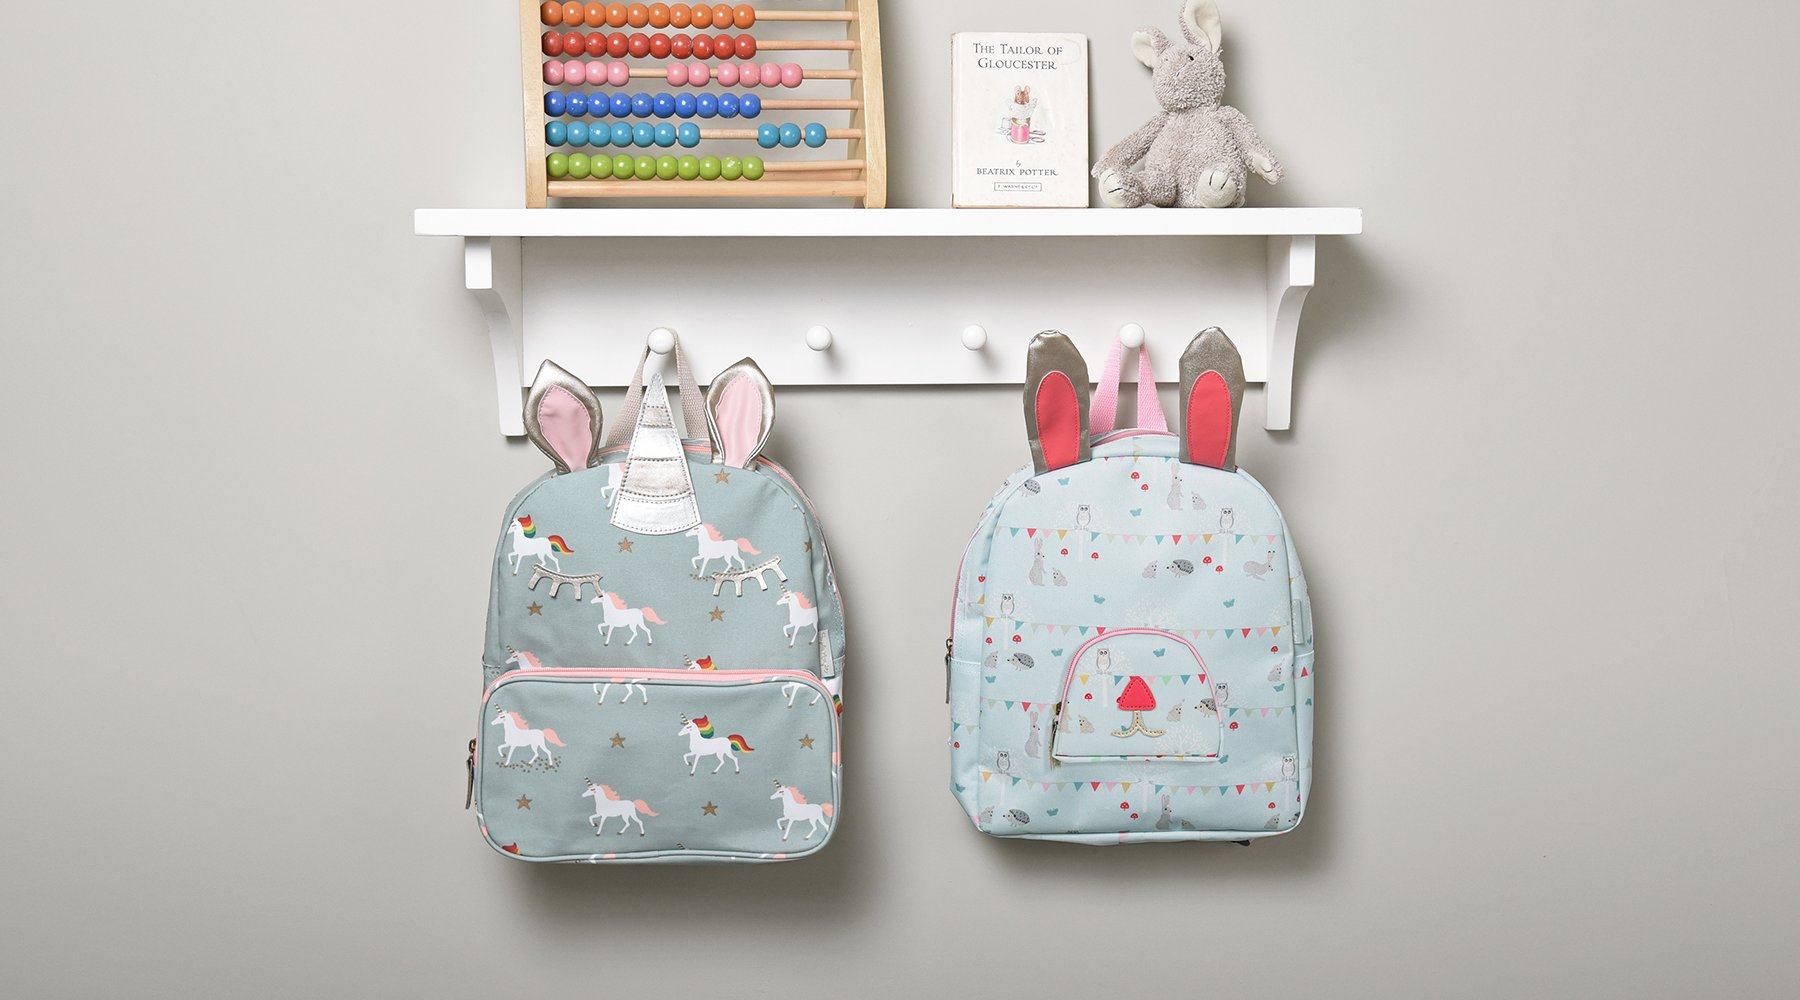 Kids backpacks by Sophie Allport